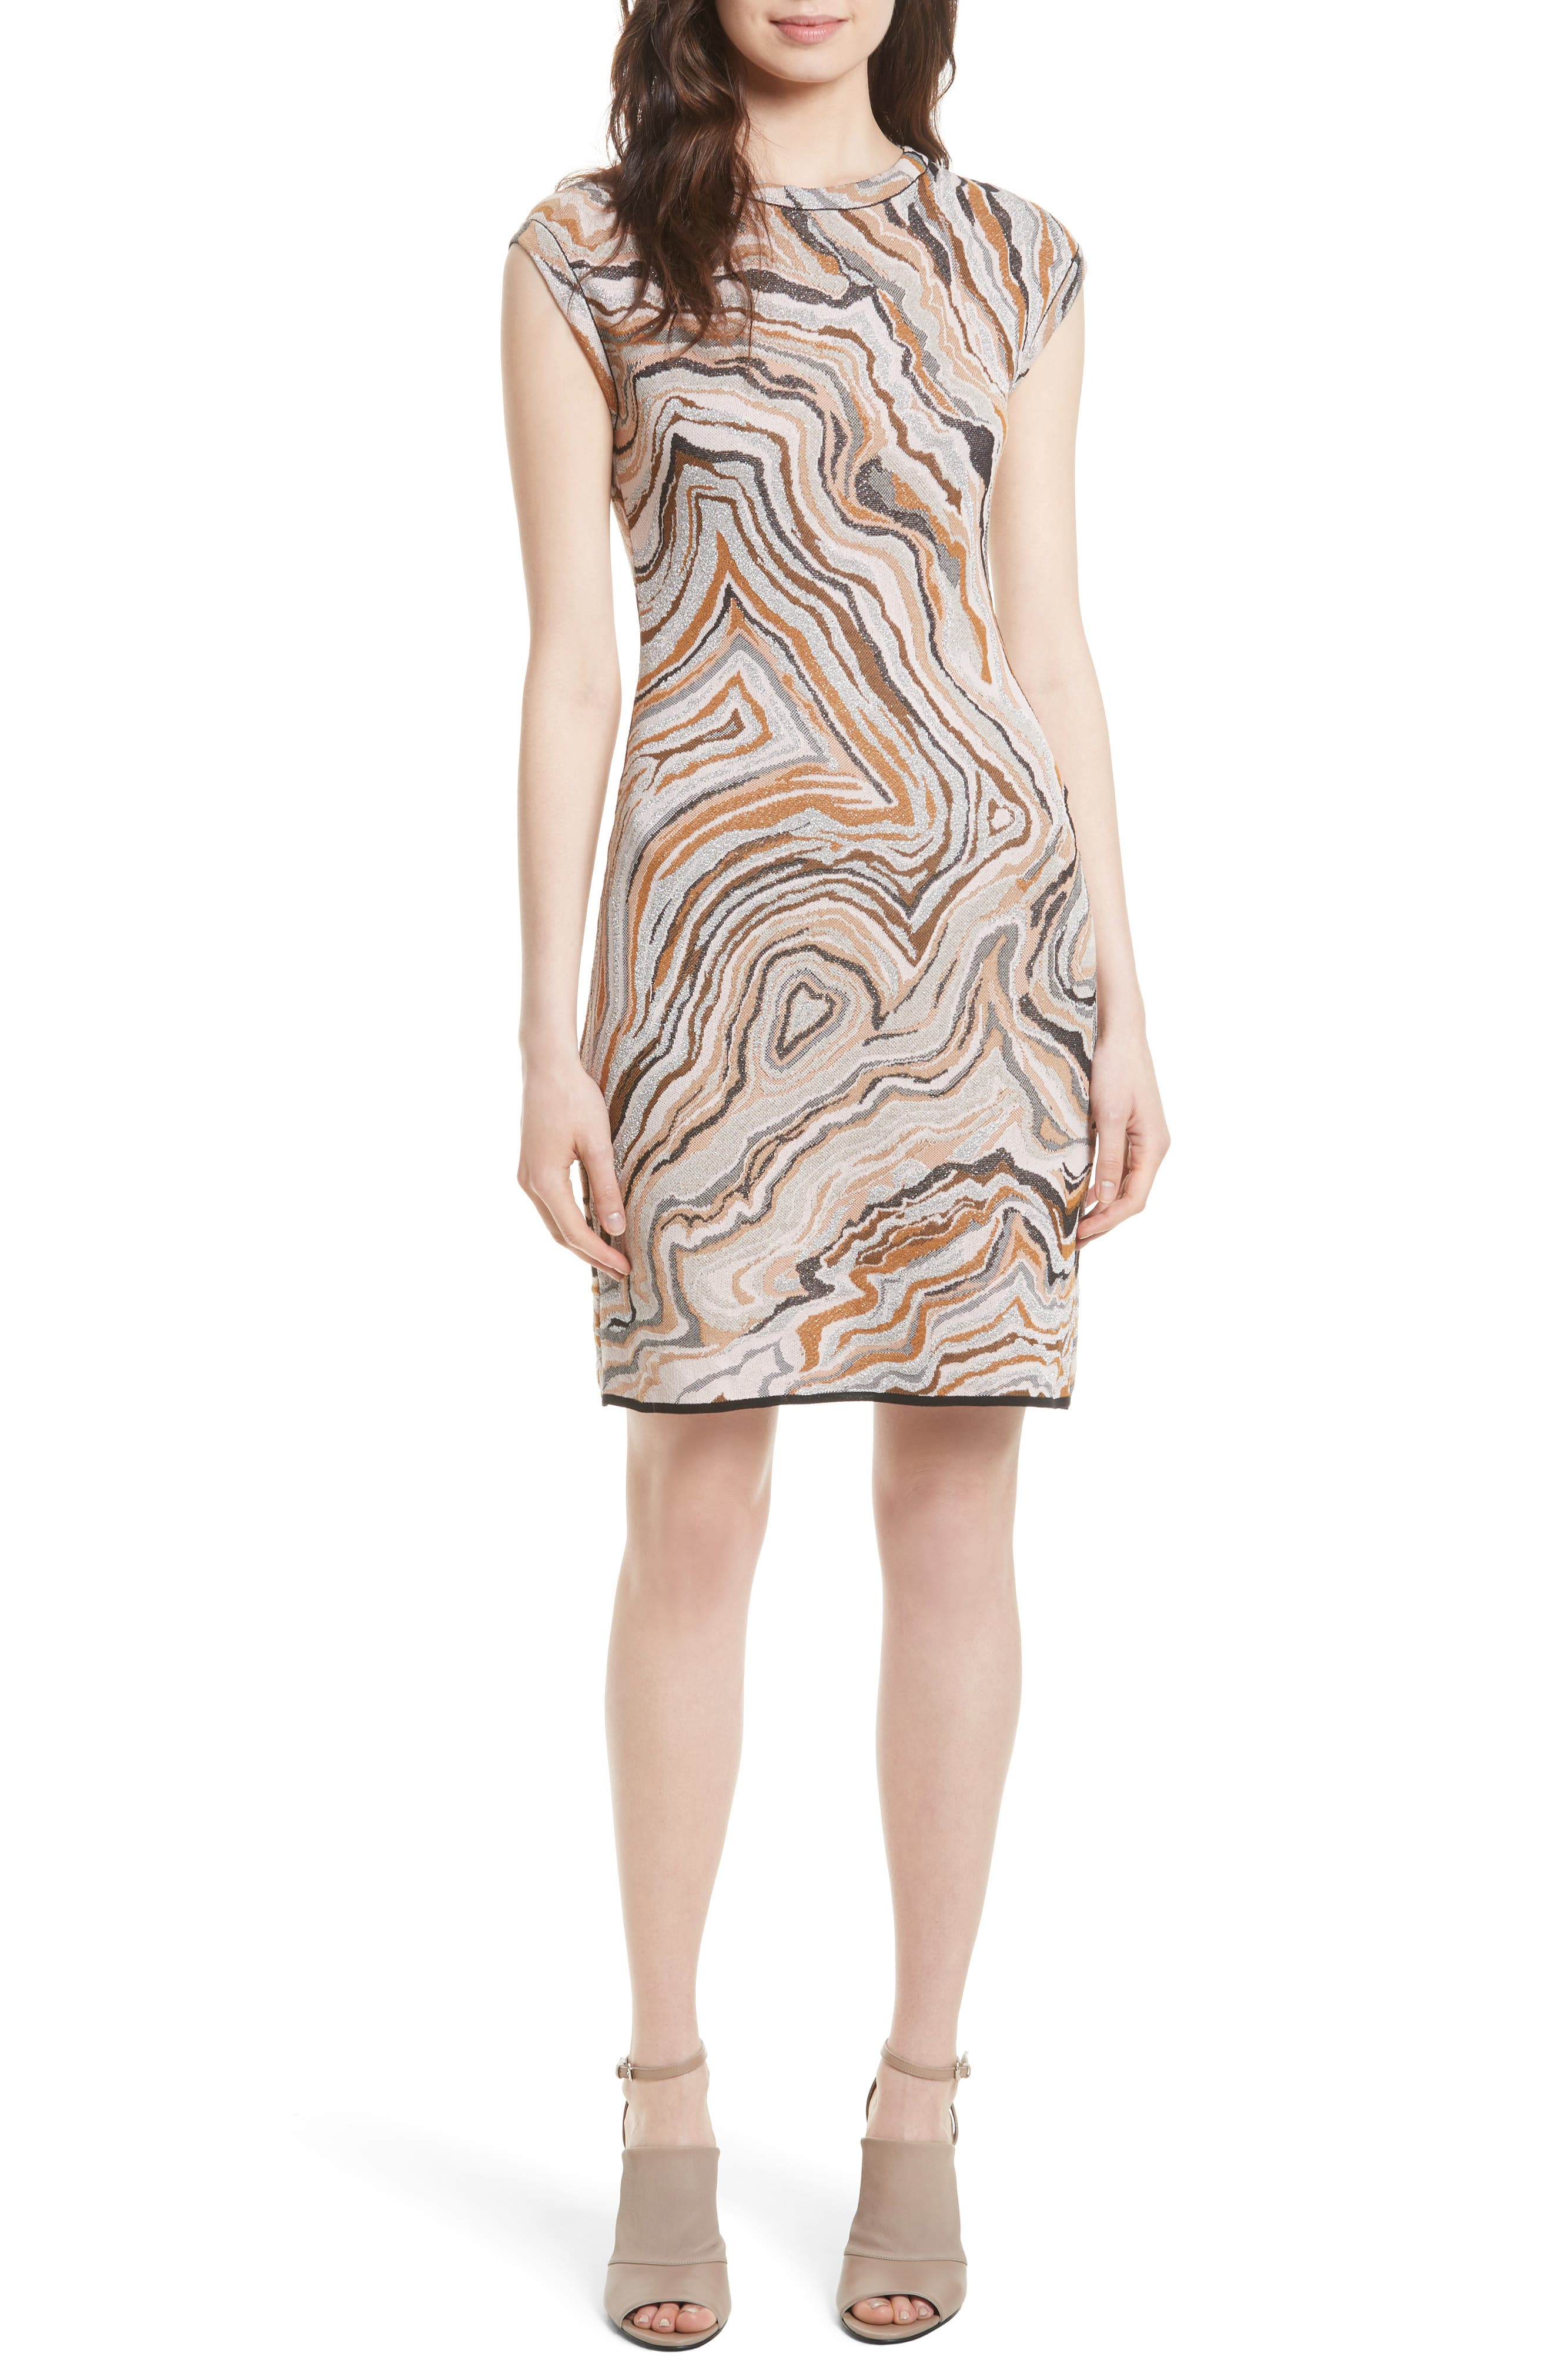 M Missoni Geode Jacquard Dress